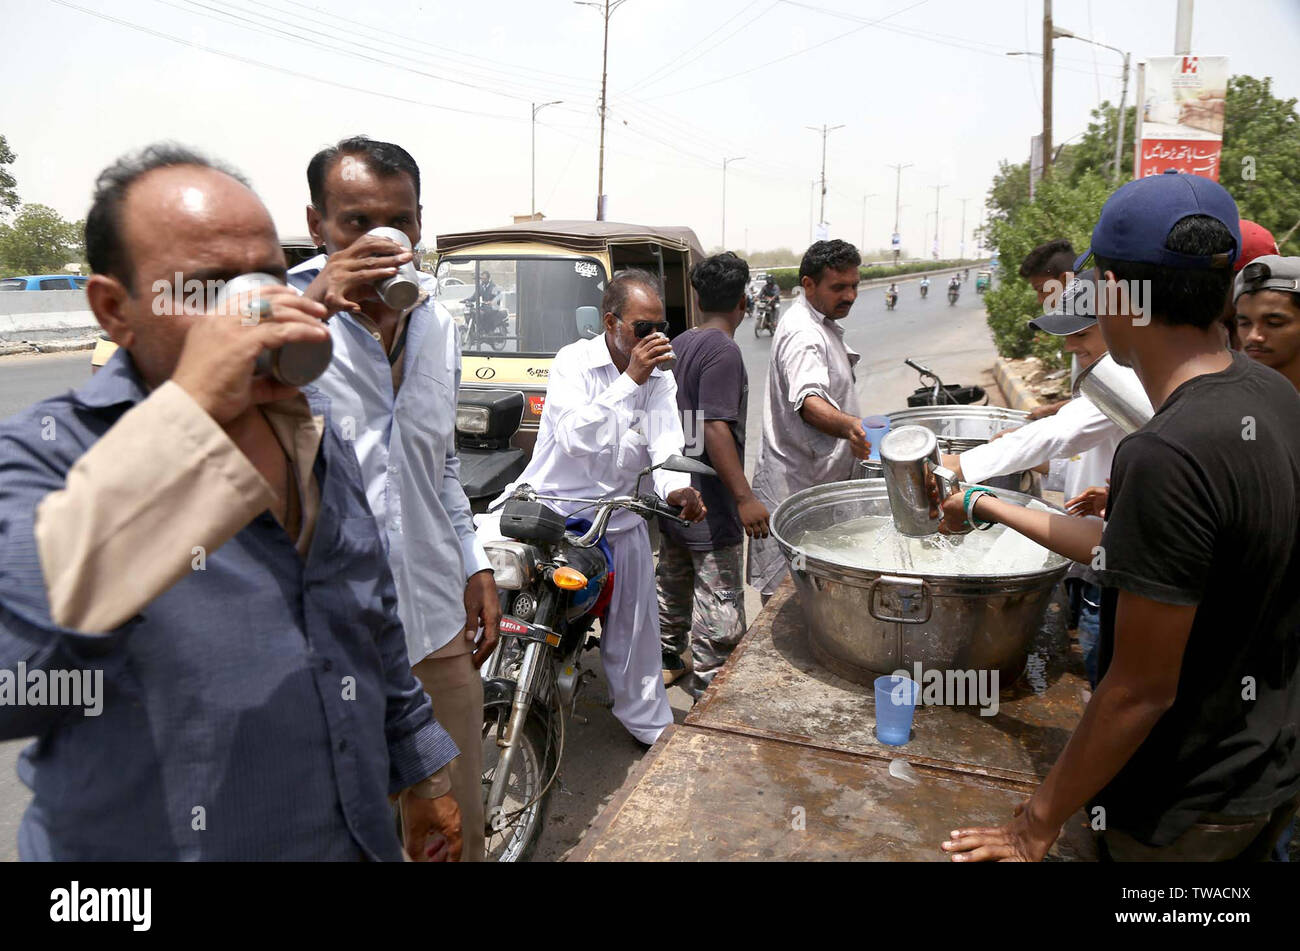 Citizens are quenching their thirst by chilled water to beat the heat of sun during the hot day of summer season, at a relief camp of heat stroke organized by Social Organization, located on Shahrah-e-Faisal road in Karachi on Tuesday, June 18, 2019 - Stock Image